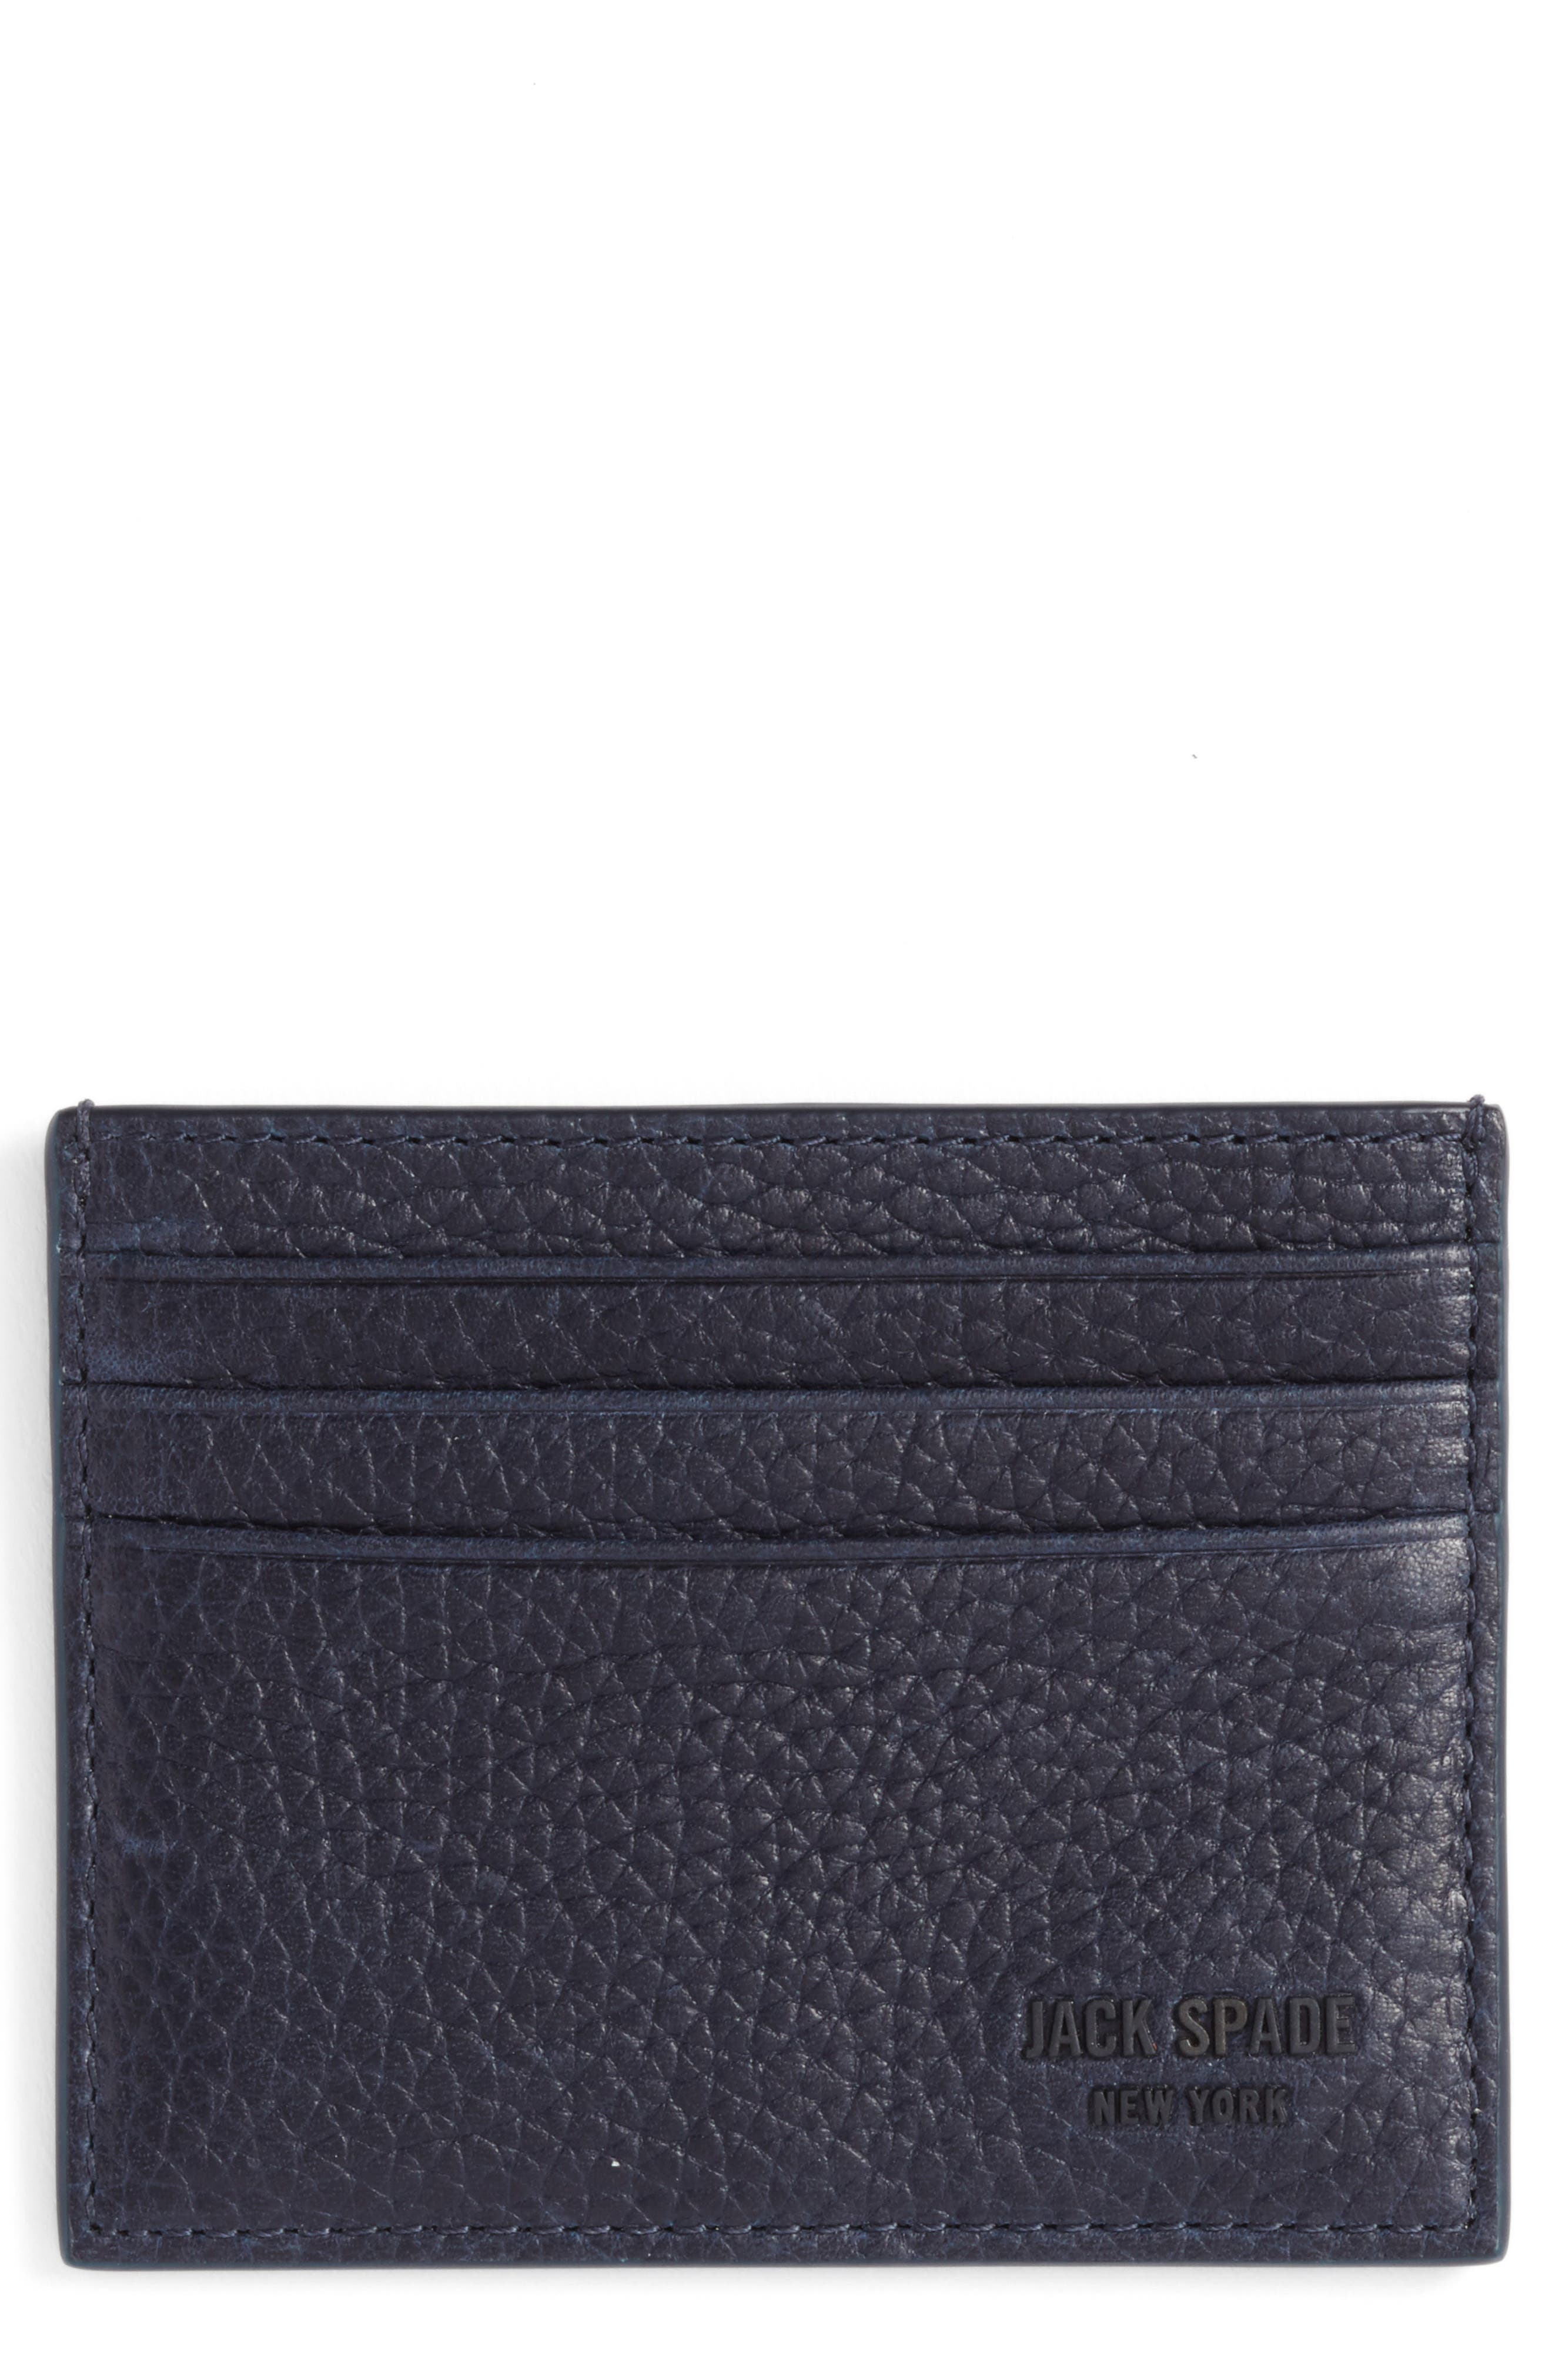 Jack Spade Leather Card Case